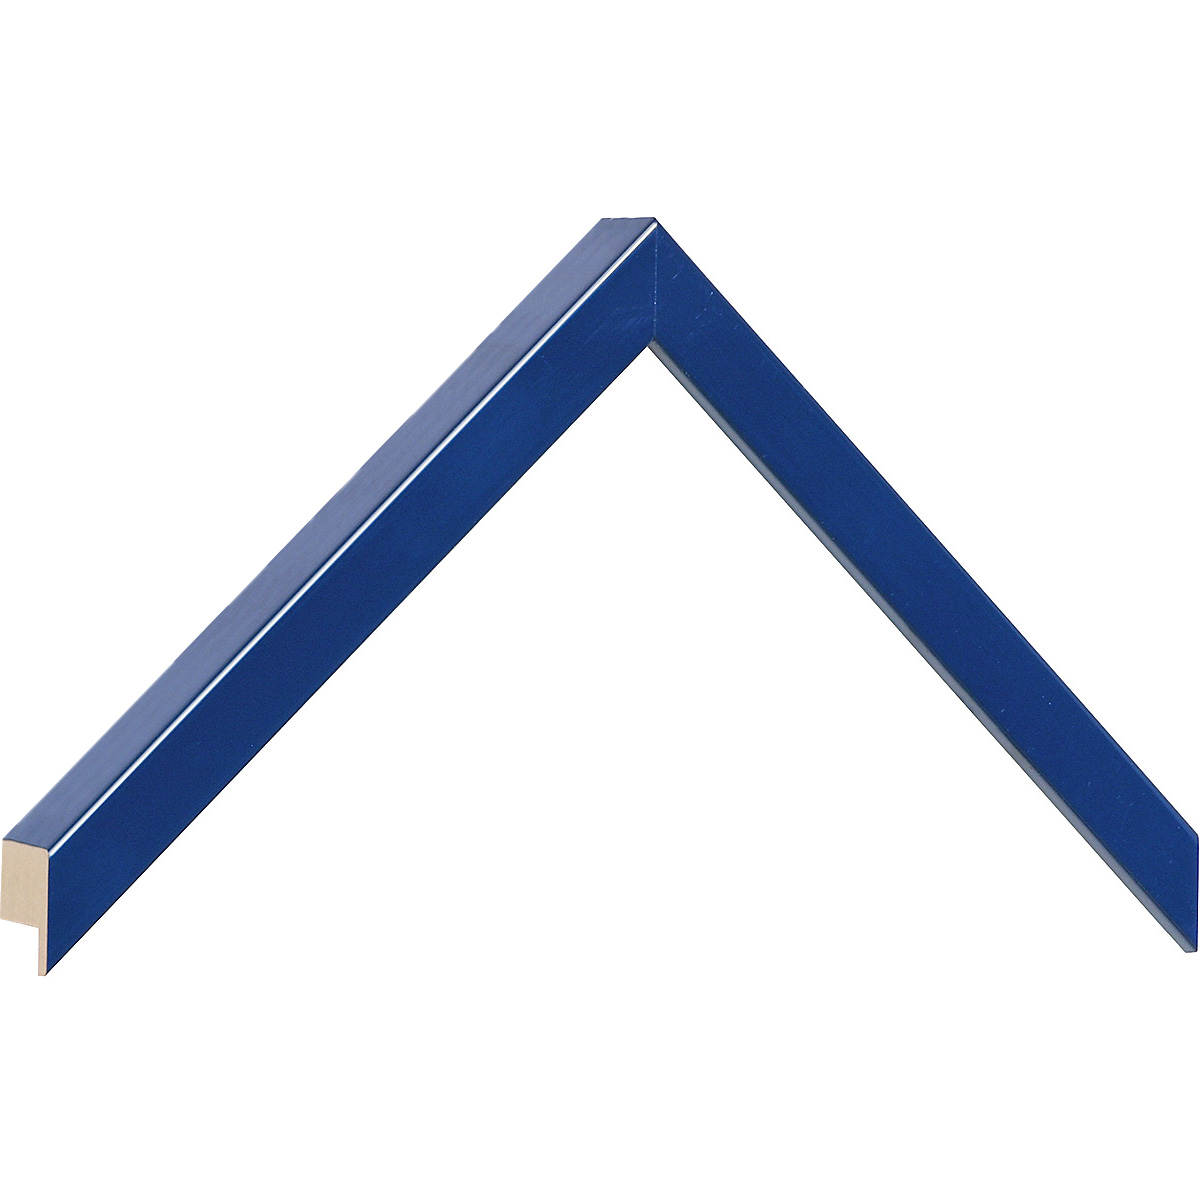 Moulding ayous, width 15mm height 25 - blue lacquered